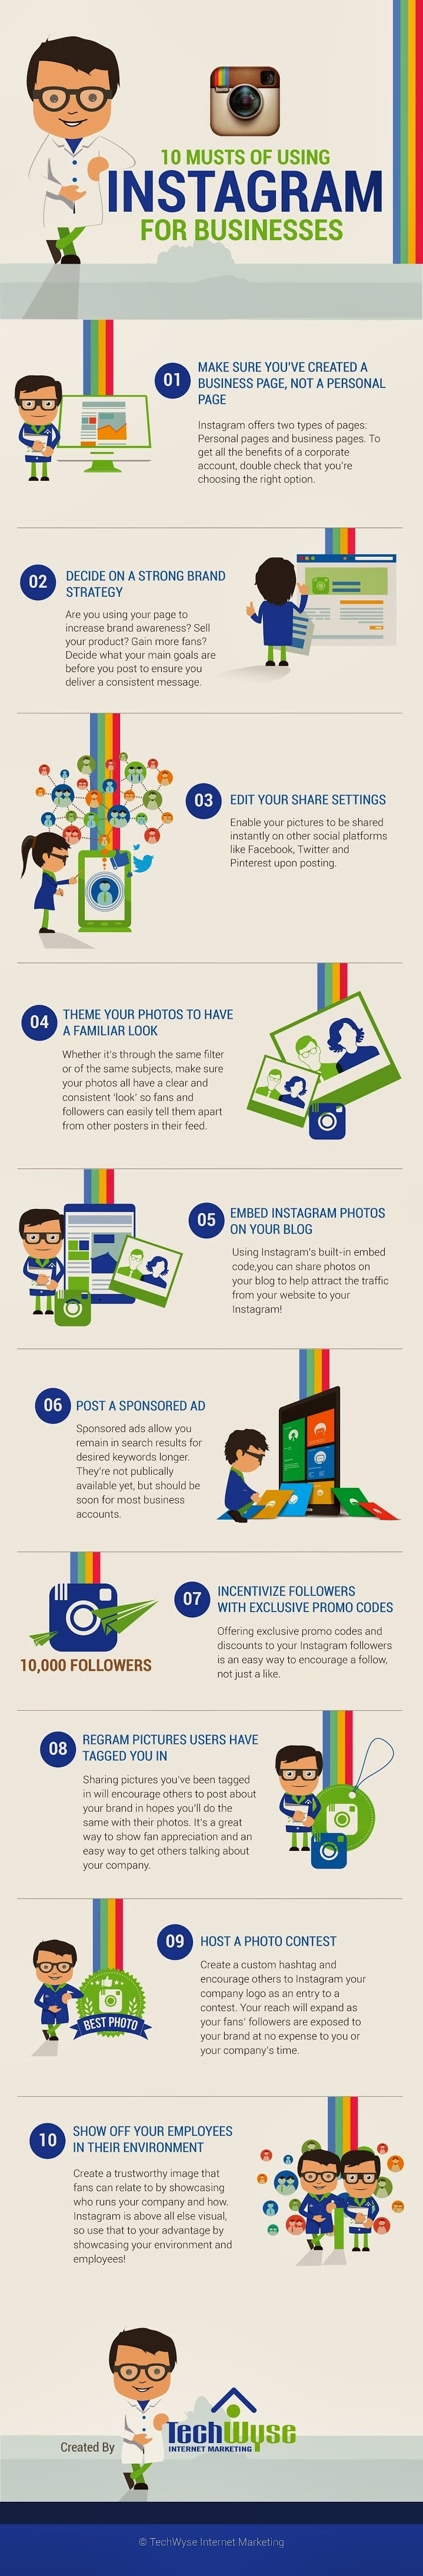 How To Use #Instagram For Businesses #infographic - #socialmedia